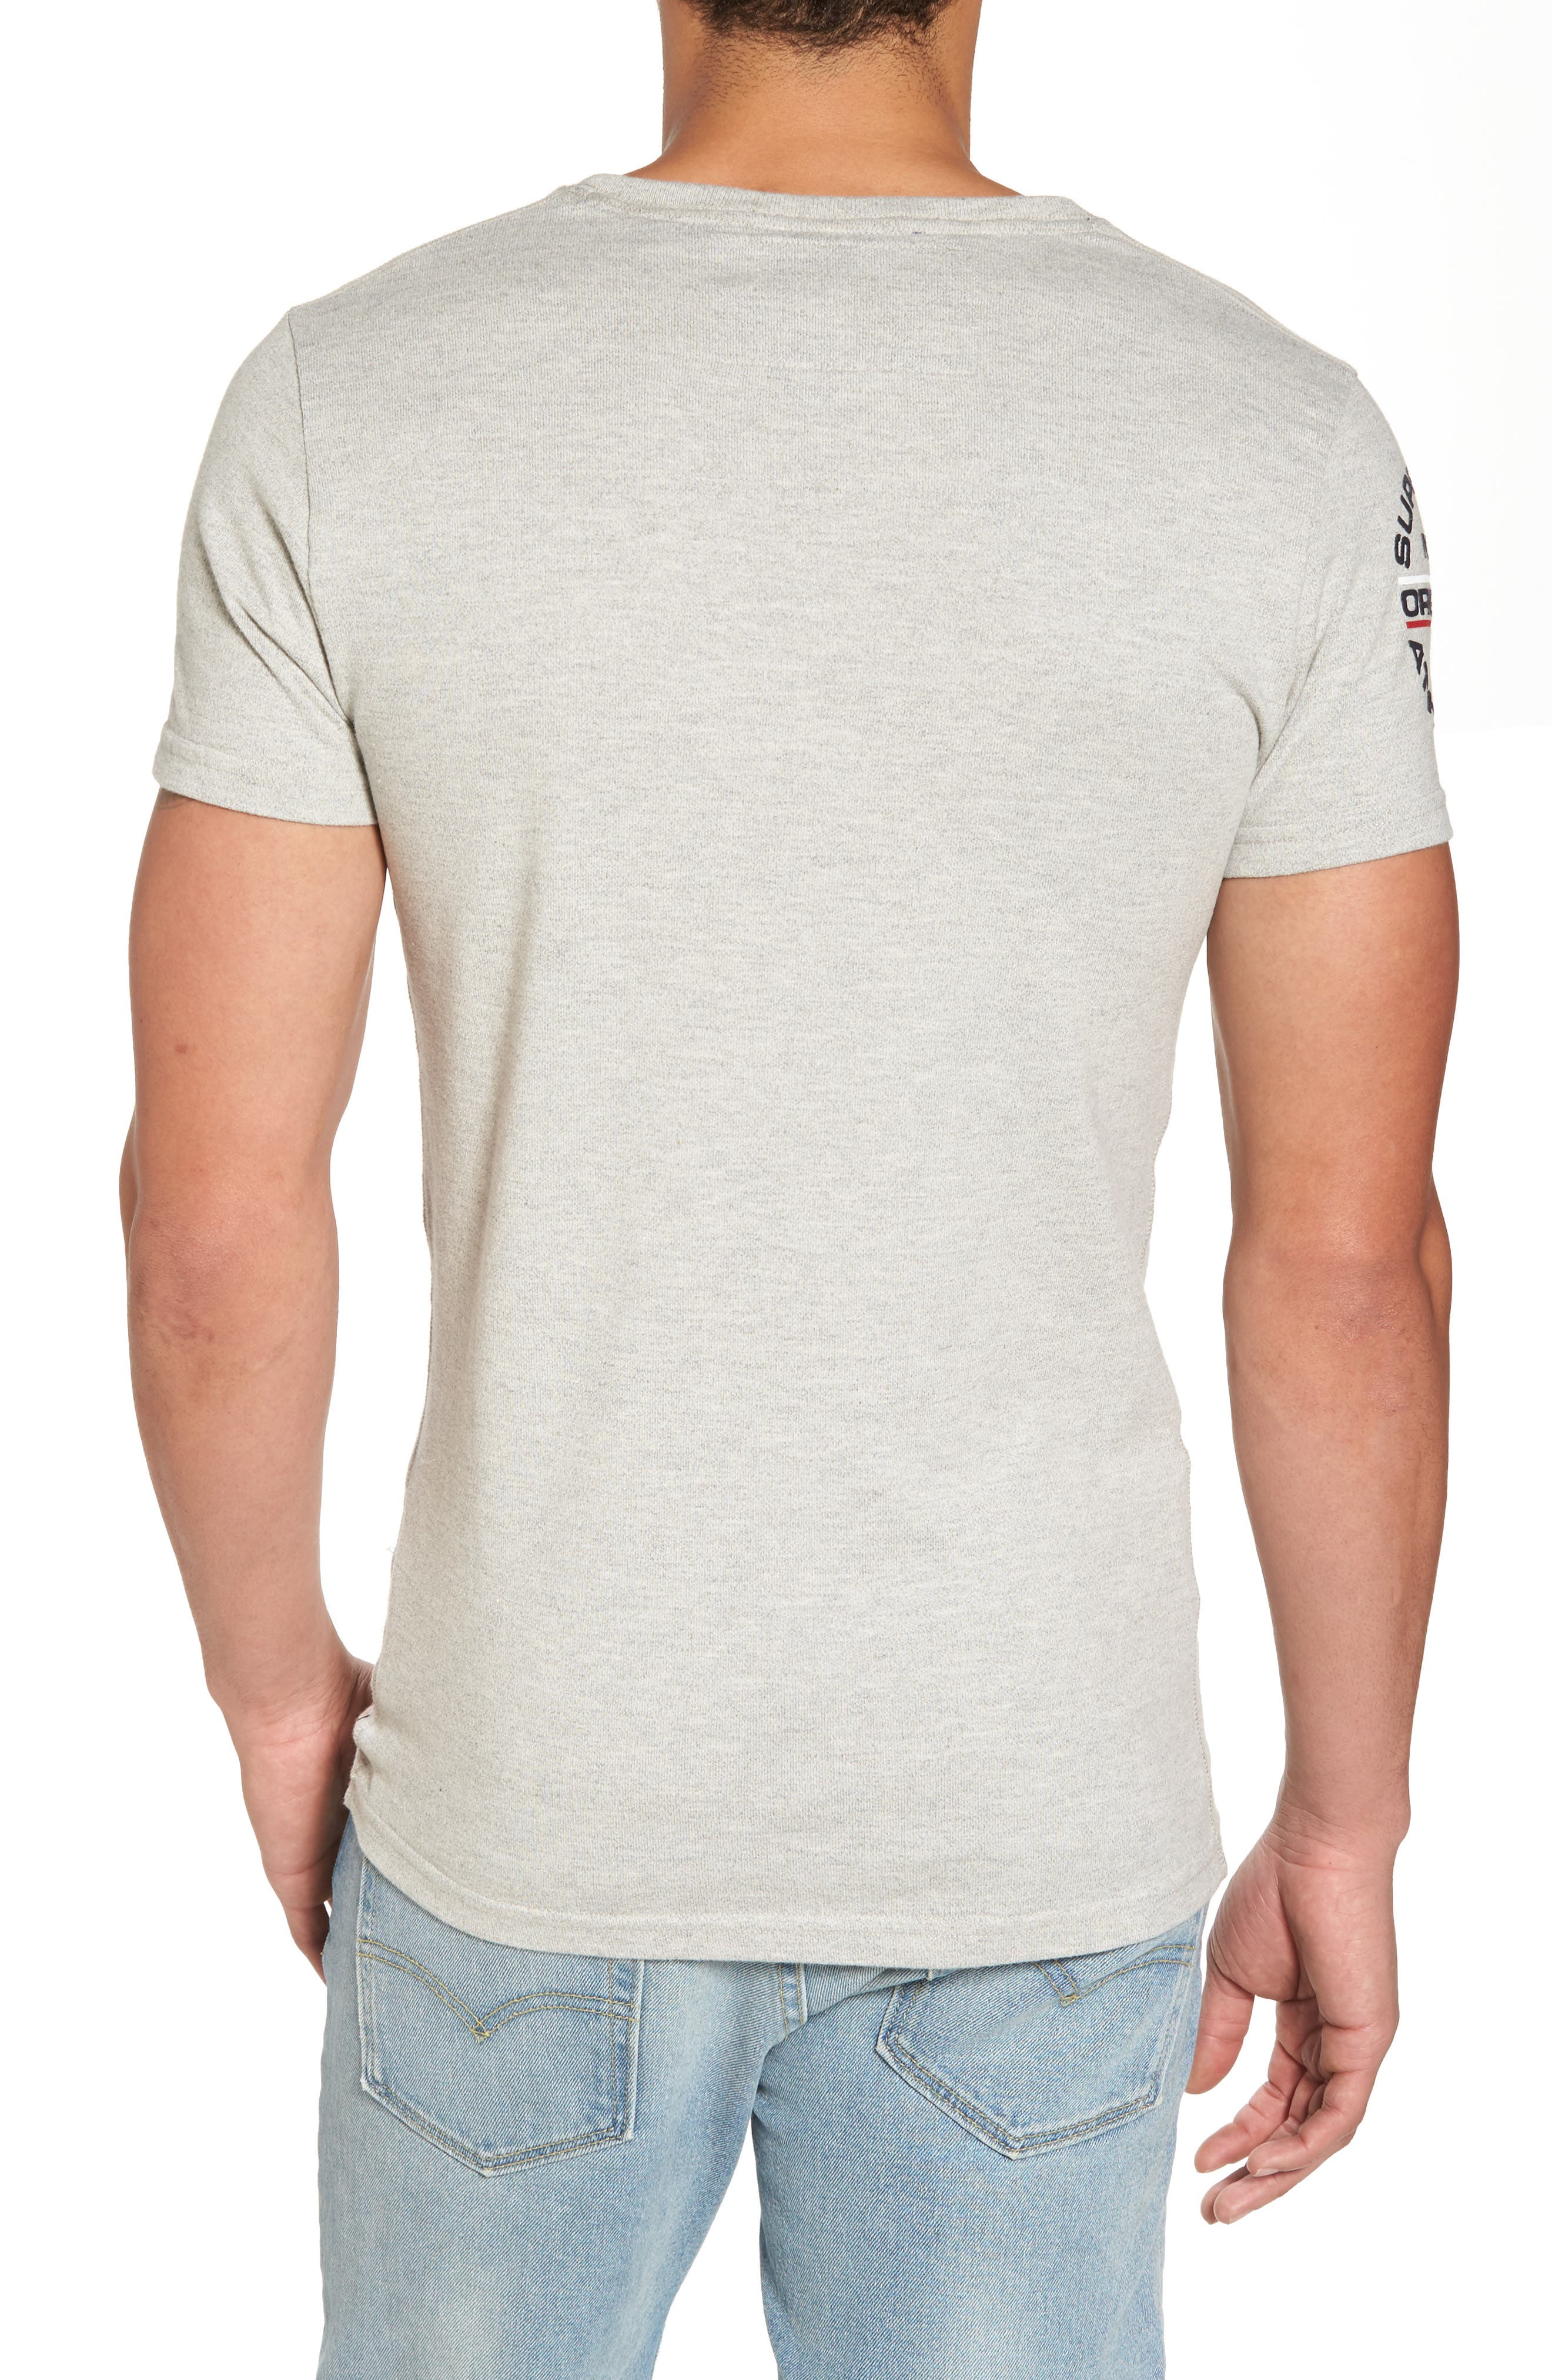 Trophy Chest Band T-Shirt,                             Alternate thumbnail 2, color,                             Superdry Stadium Grey Grindle